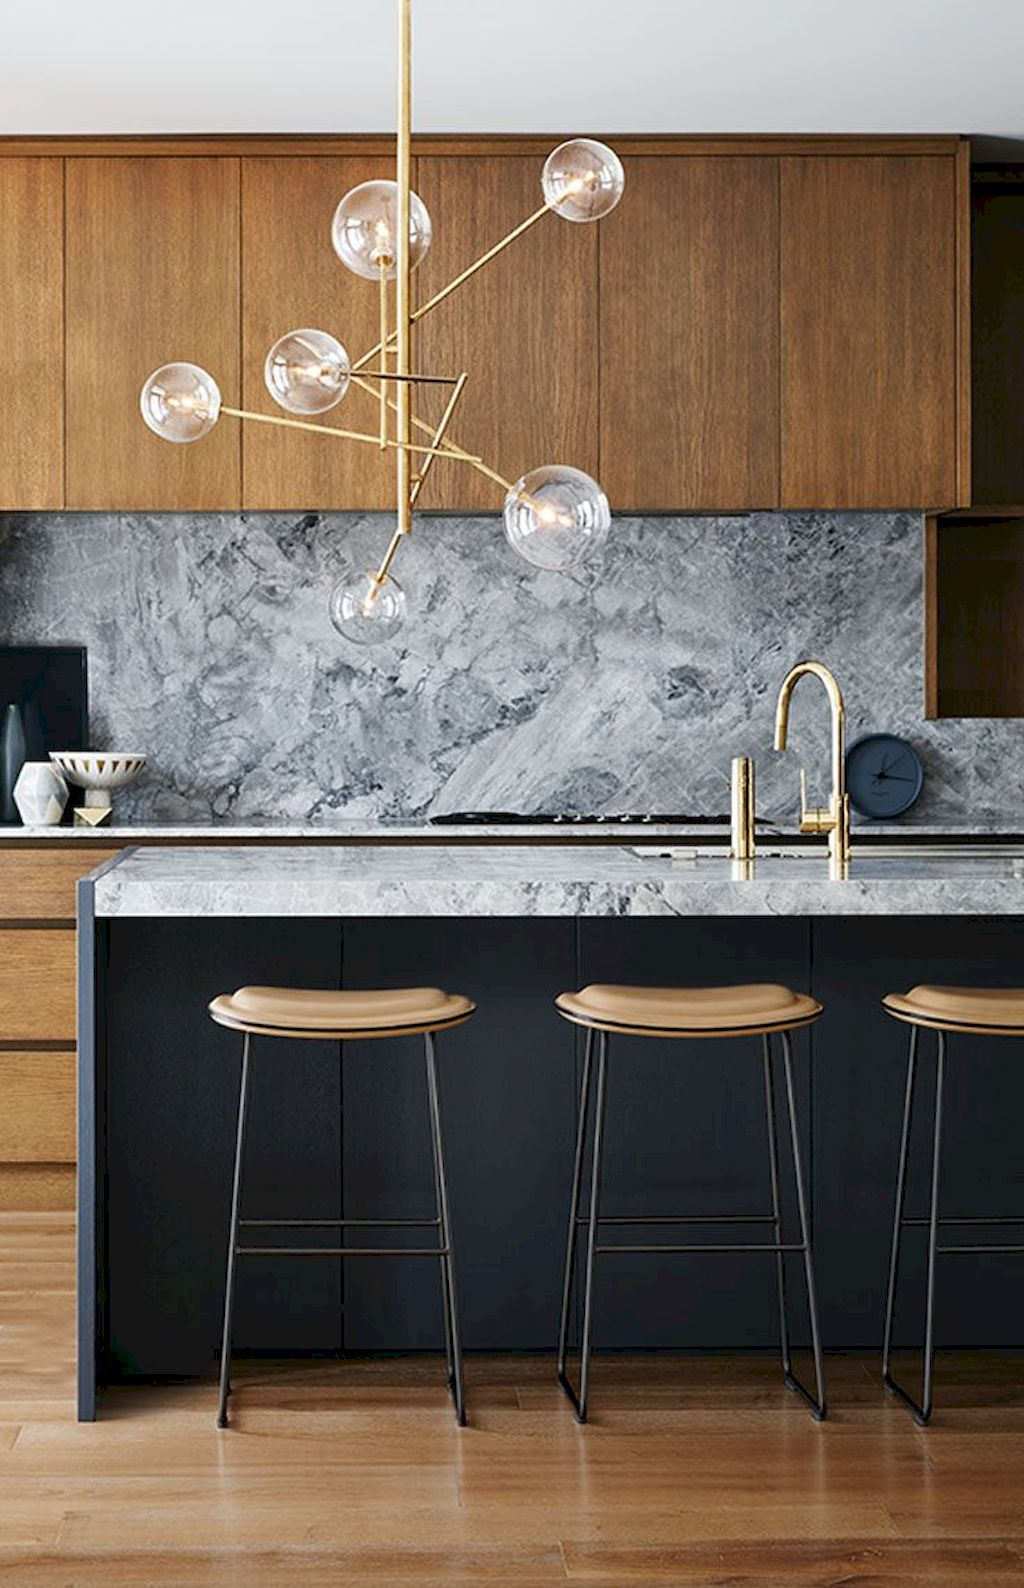 Decorative Kitchen Pendant Design with Modern and Classic Concept Part 30